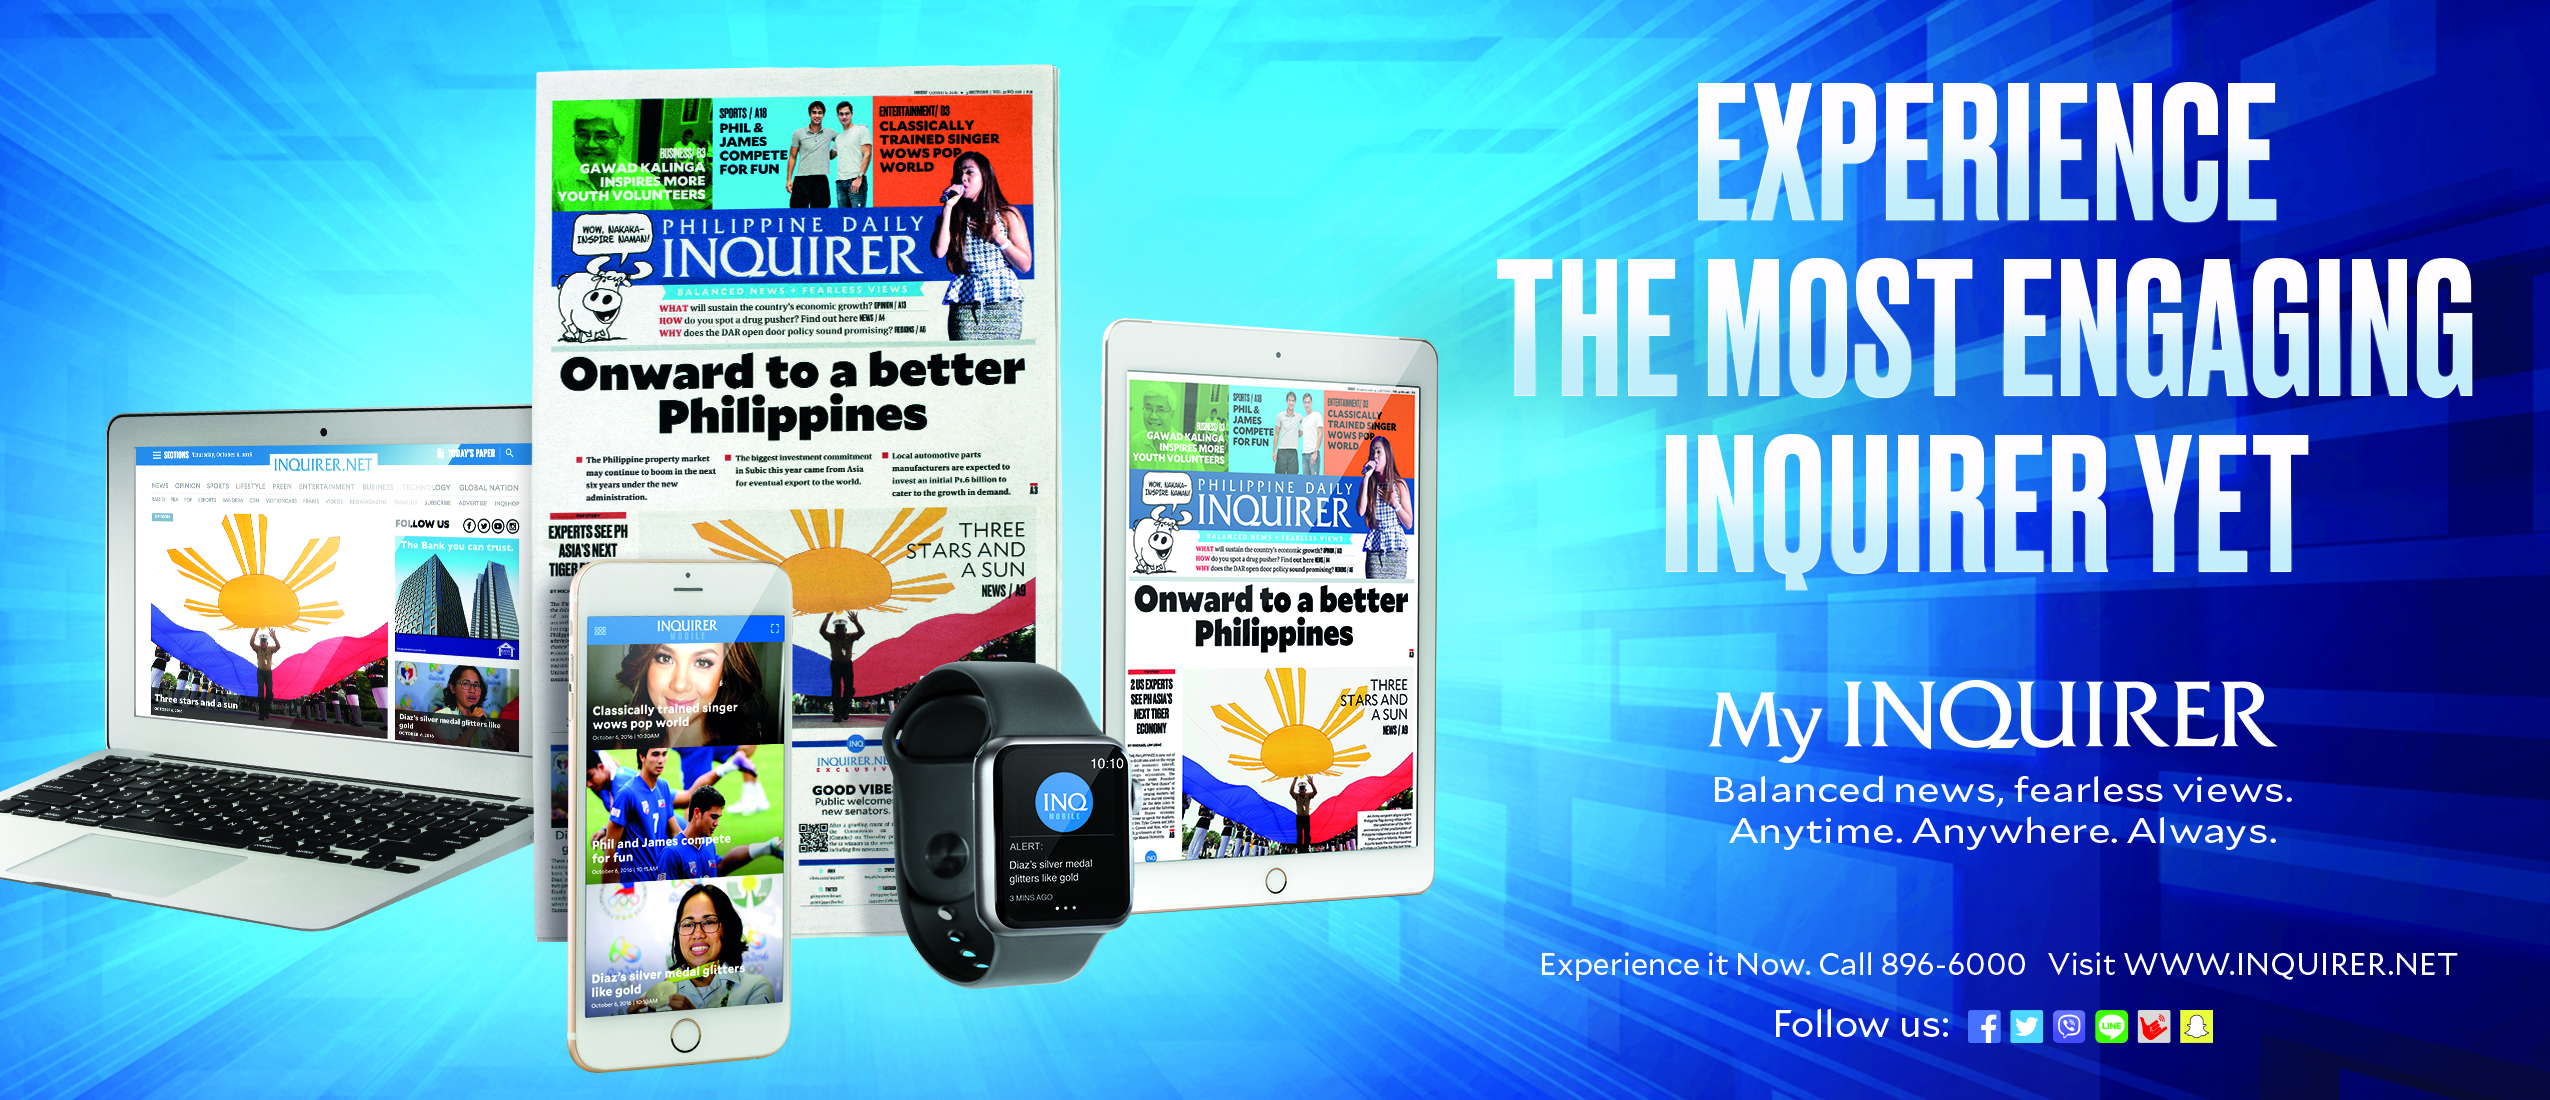 Project OMG: The Most Engaging Inquirer Yet